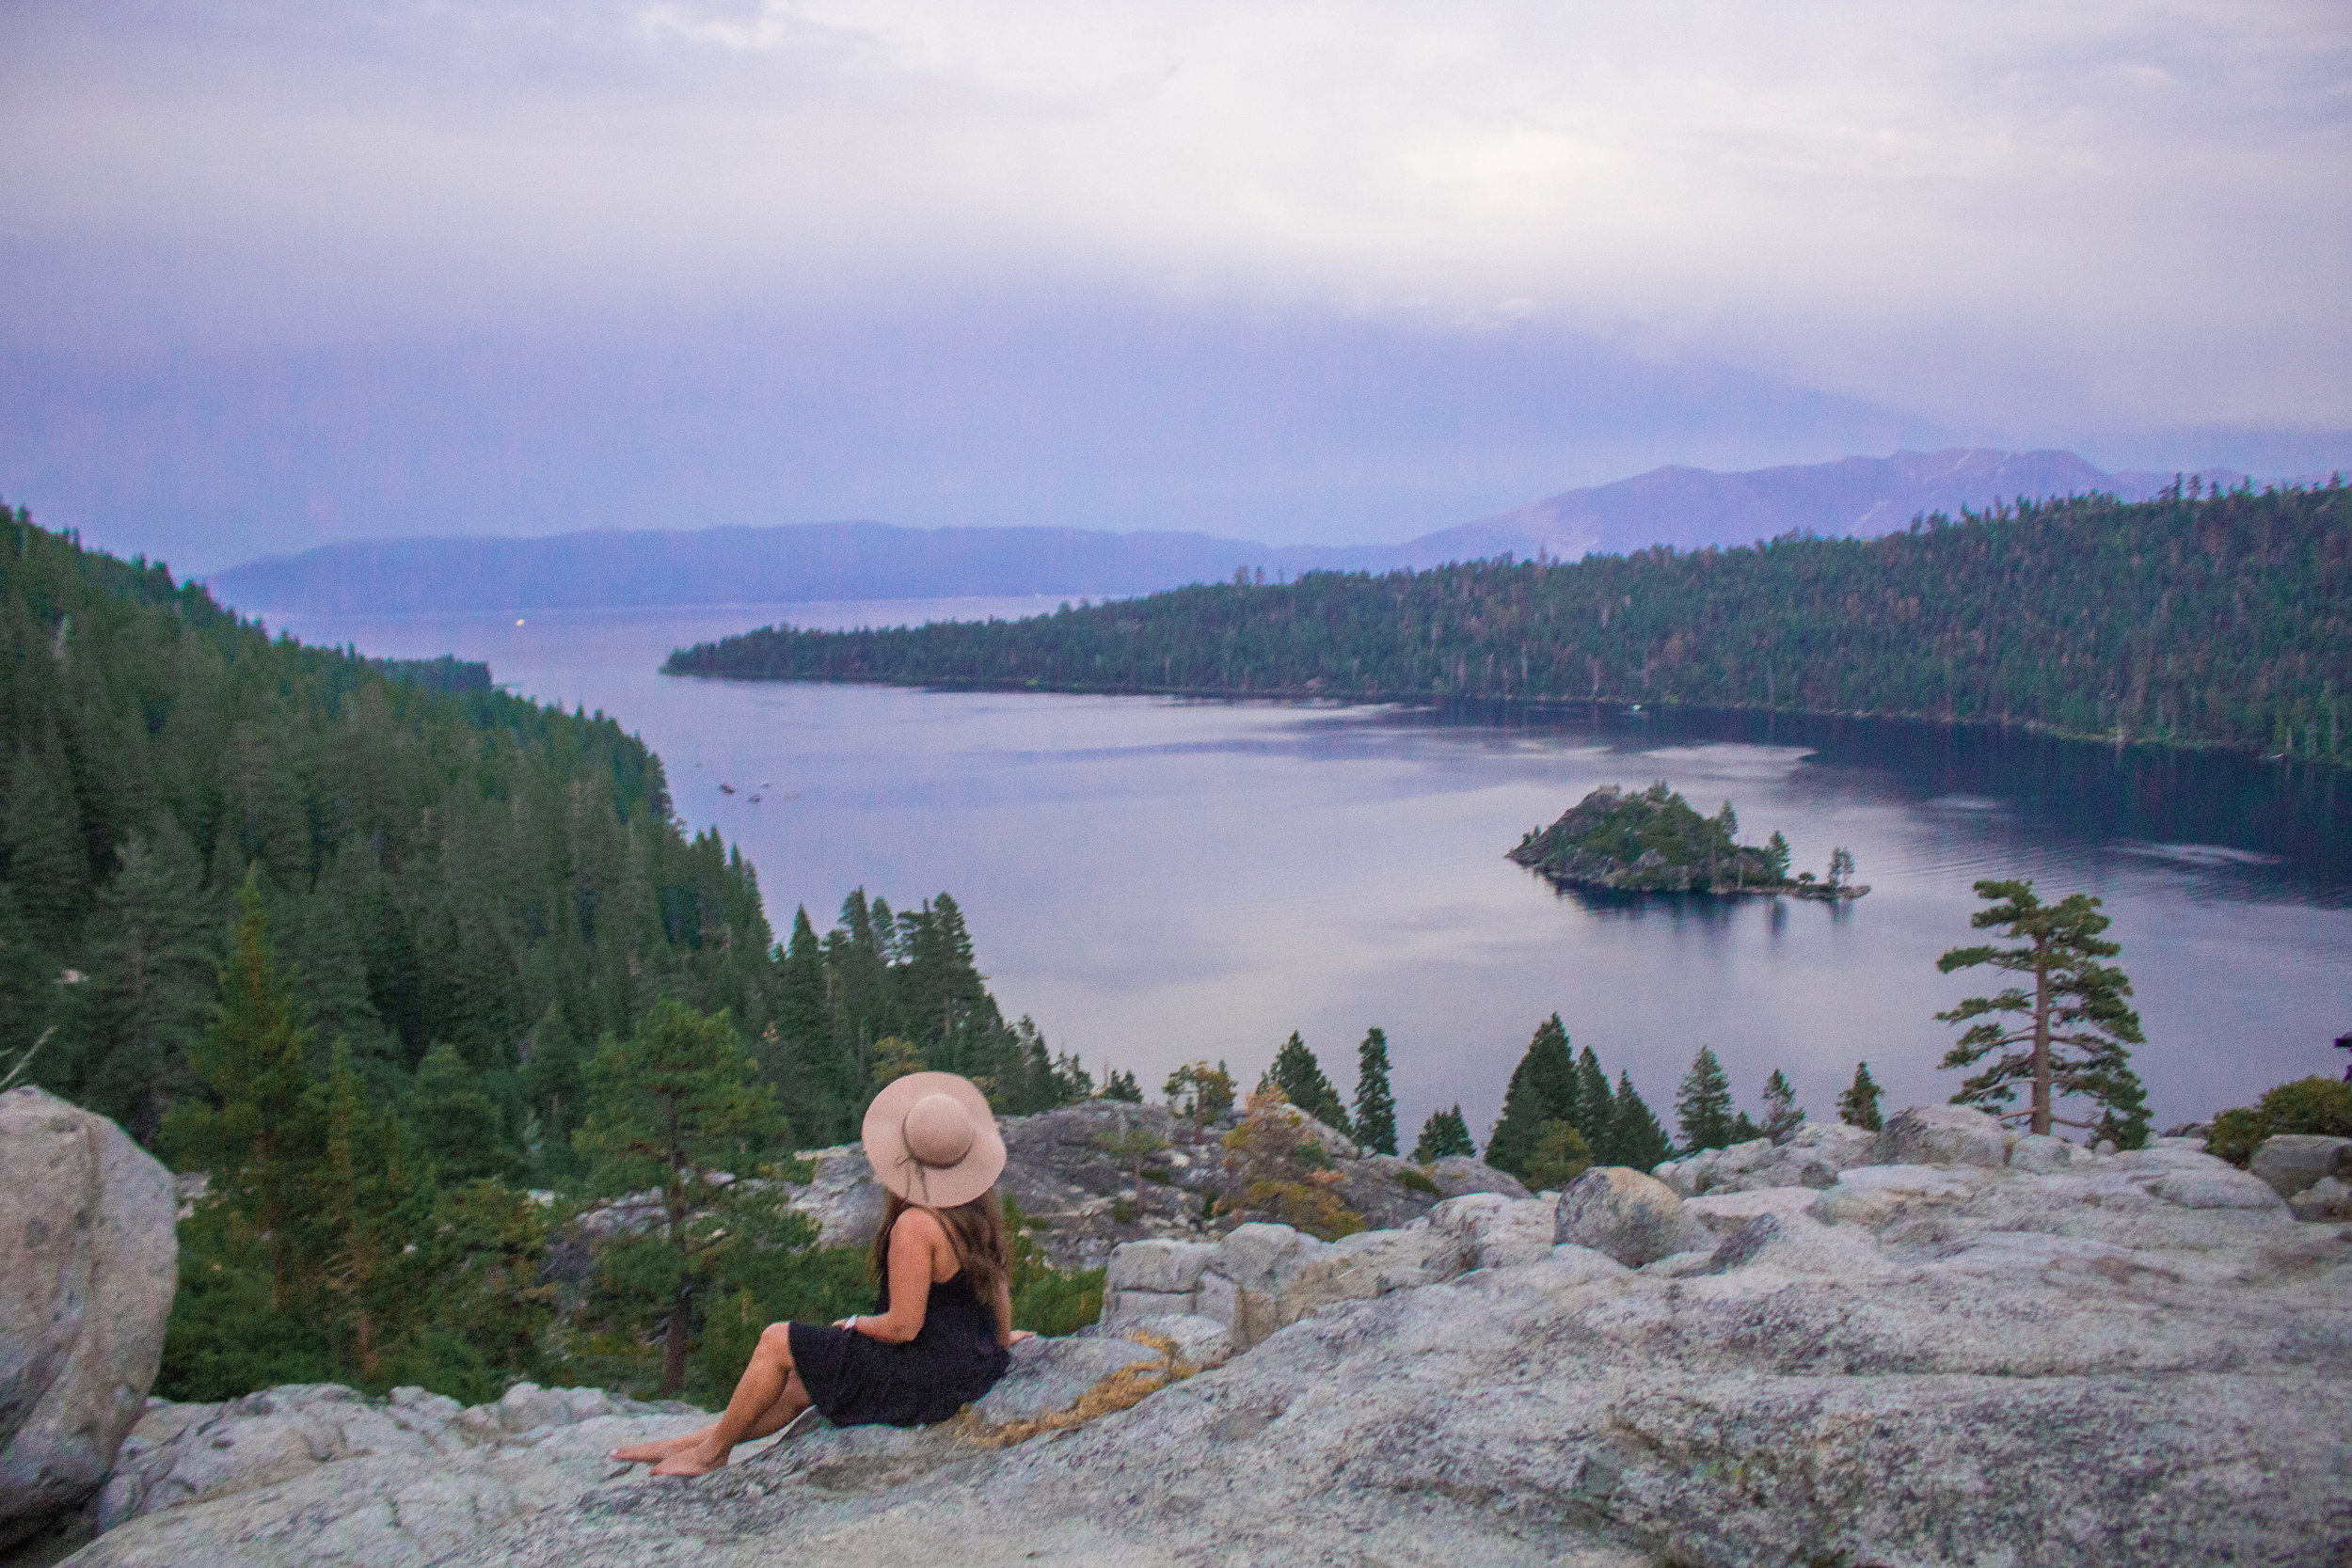 -SUMMER TRAVEL GUIDE TO SOUTH LAKE TAHOE - EMERALD BAY